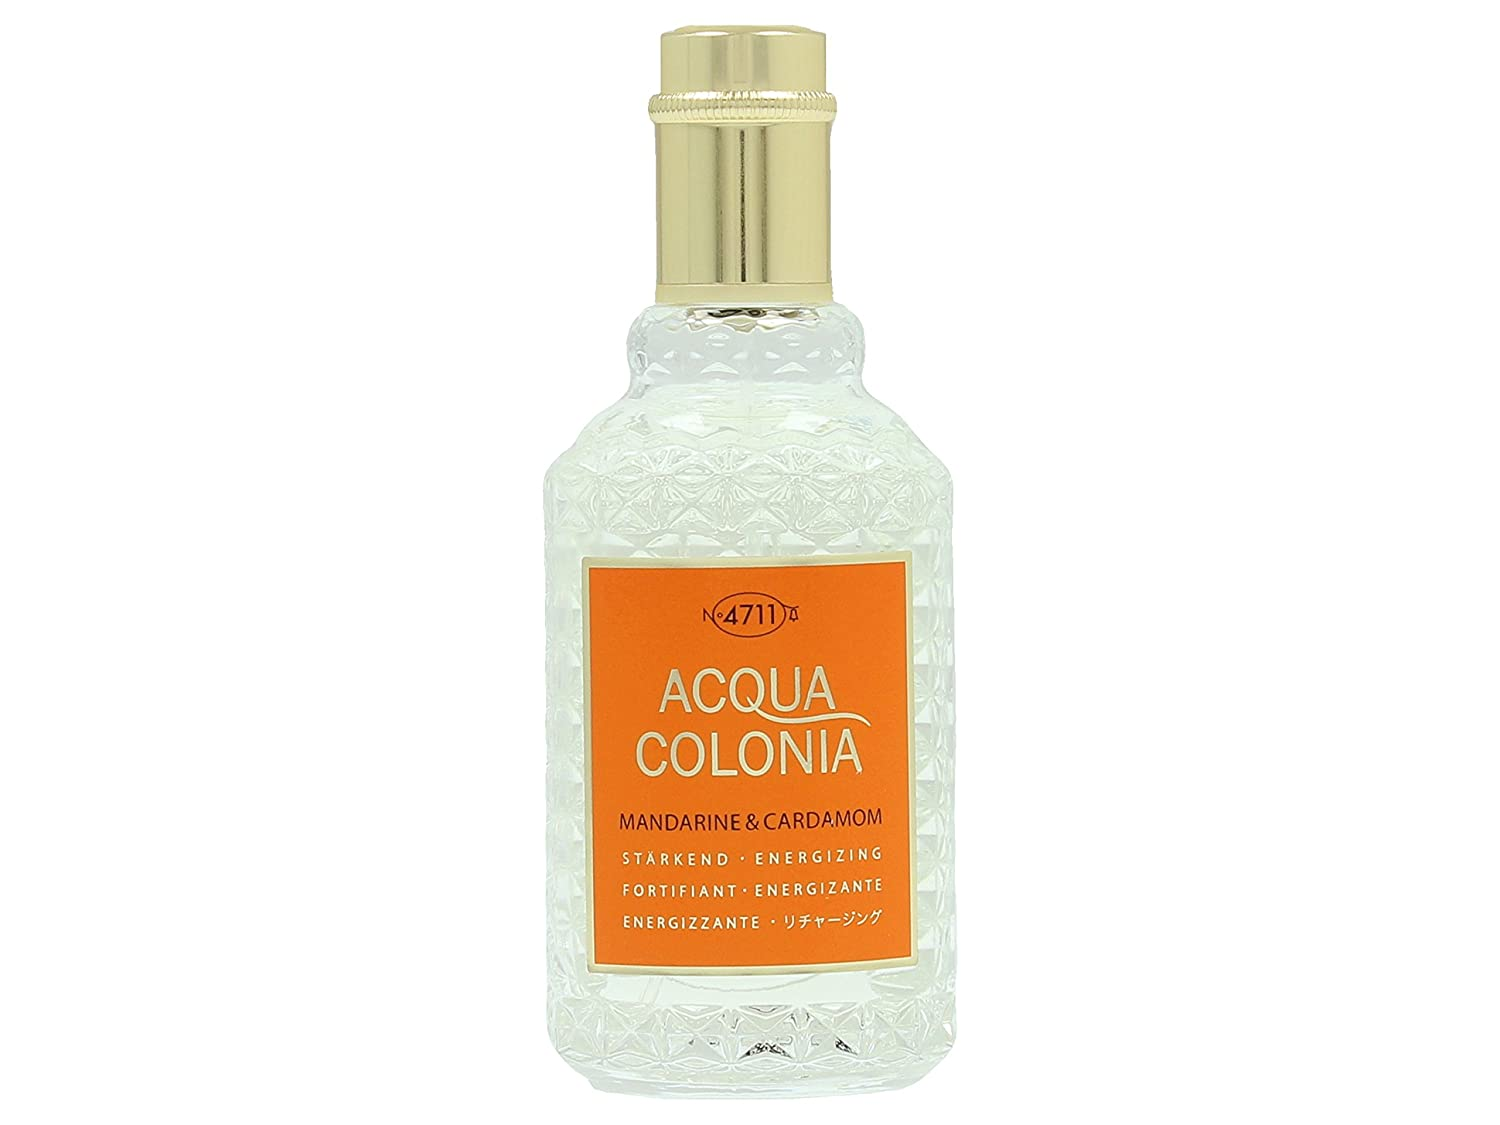 ACQUA COLONIA Acqua Col Mand/Card Edc 50 ml 4711 3UM1201 42918_-50 ml